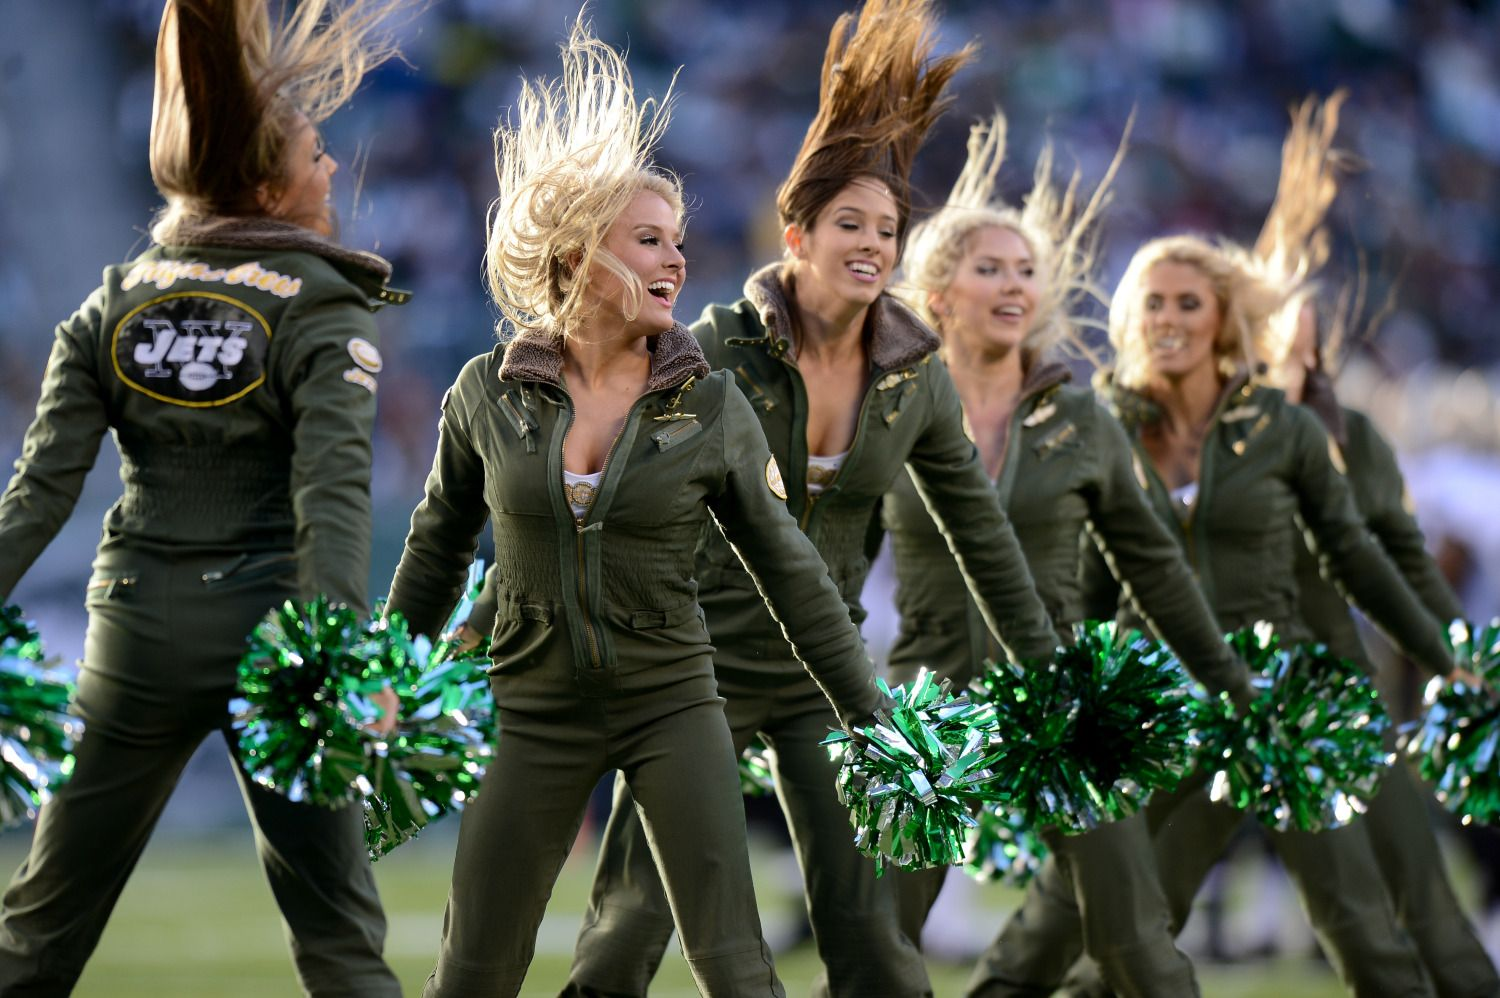 Jets To Pay 324K To Settle Cheerleaders' Wage Lawsuit